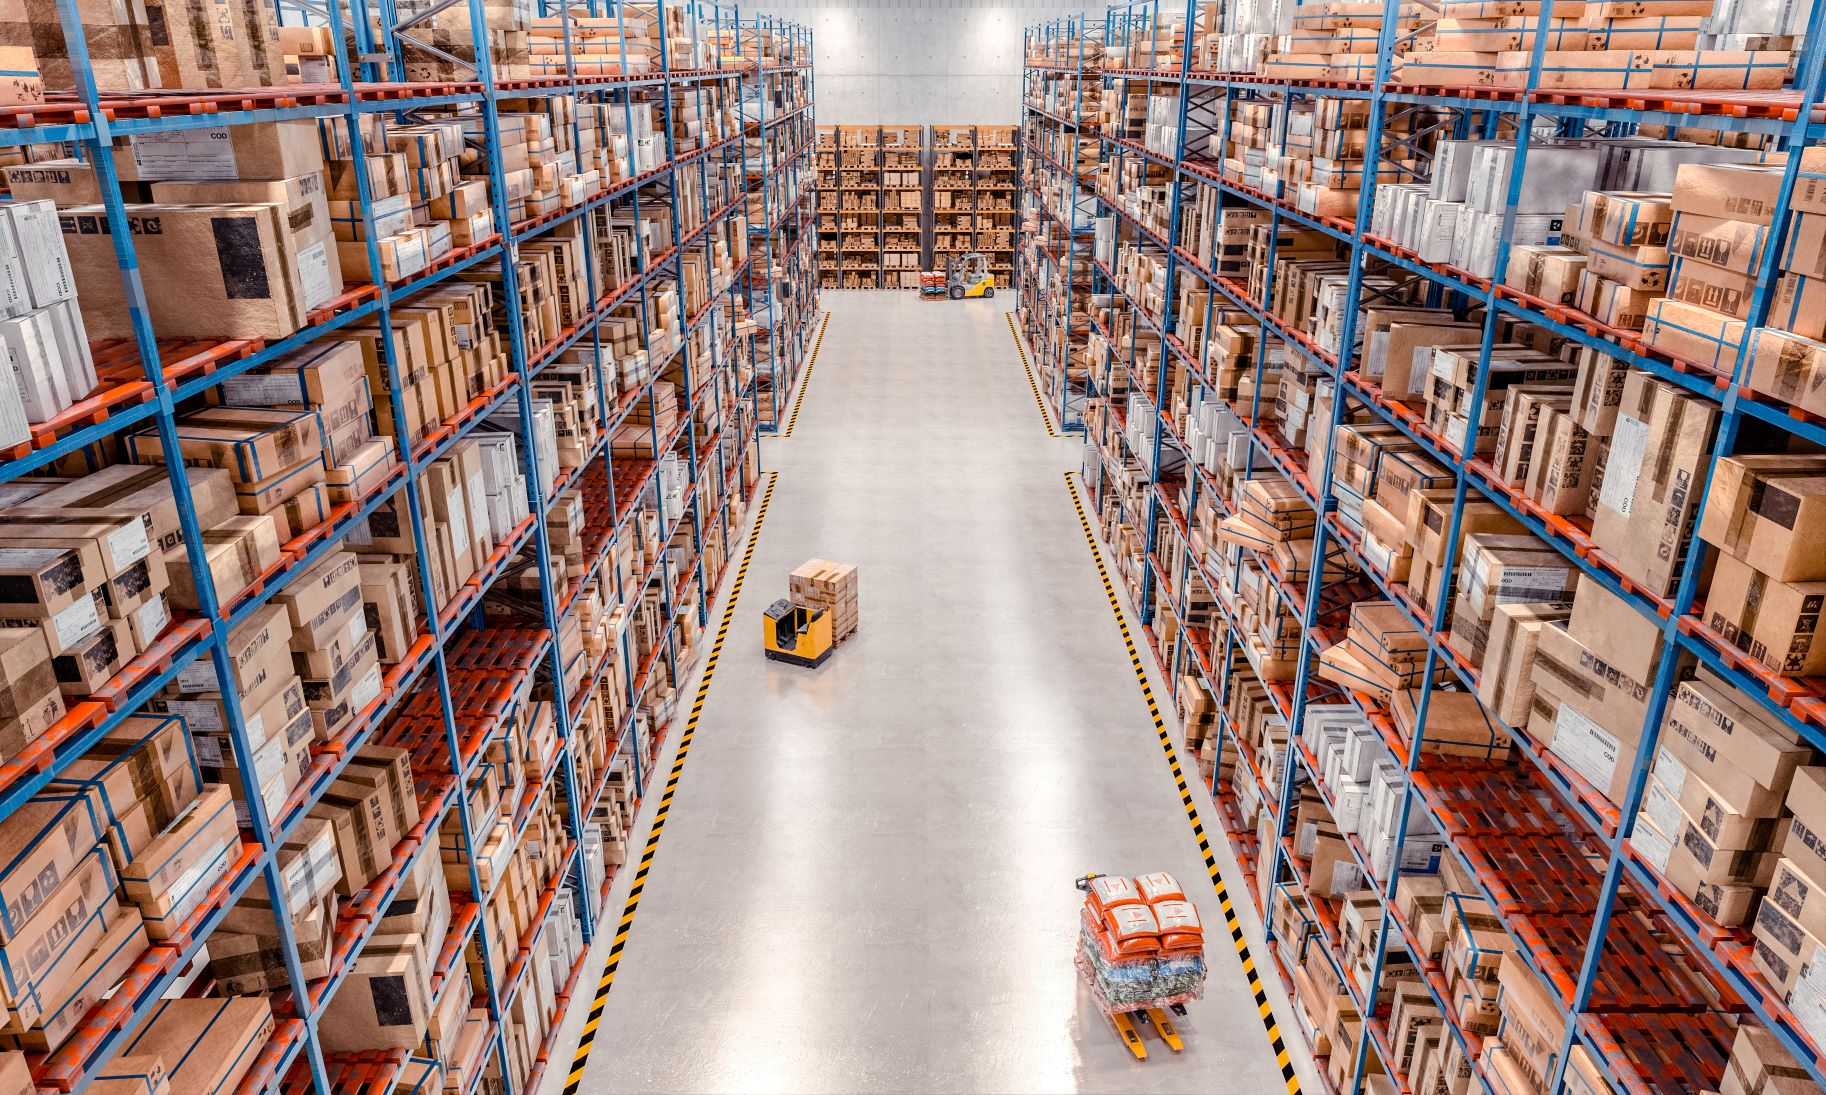 The Fundamentals of Efficient FTZ Warehouse Operations